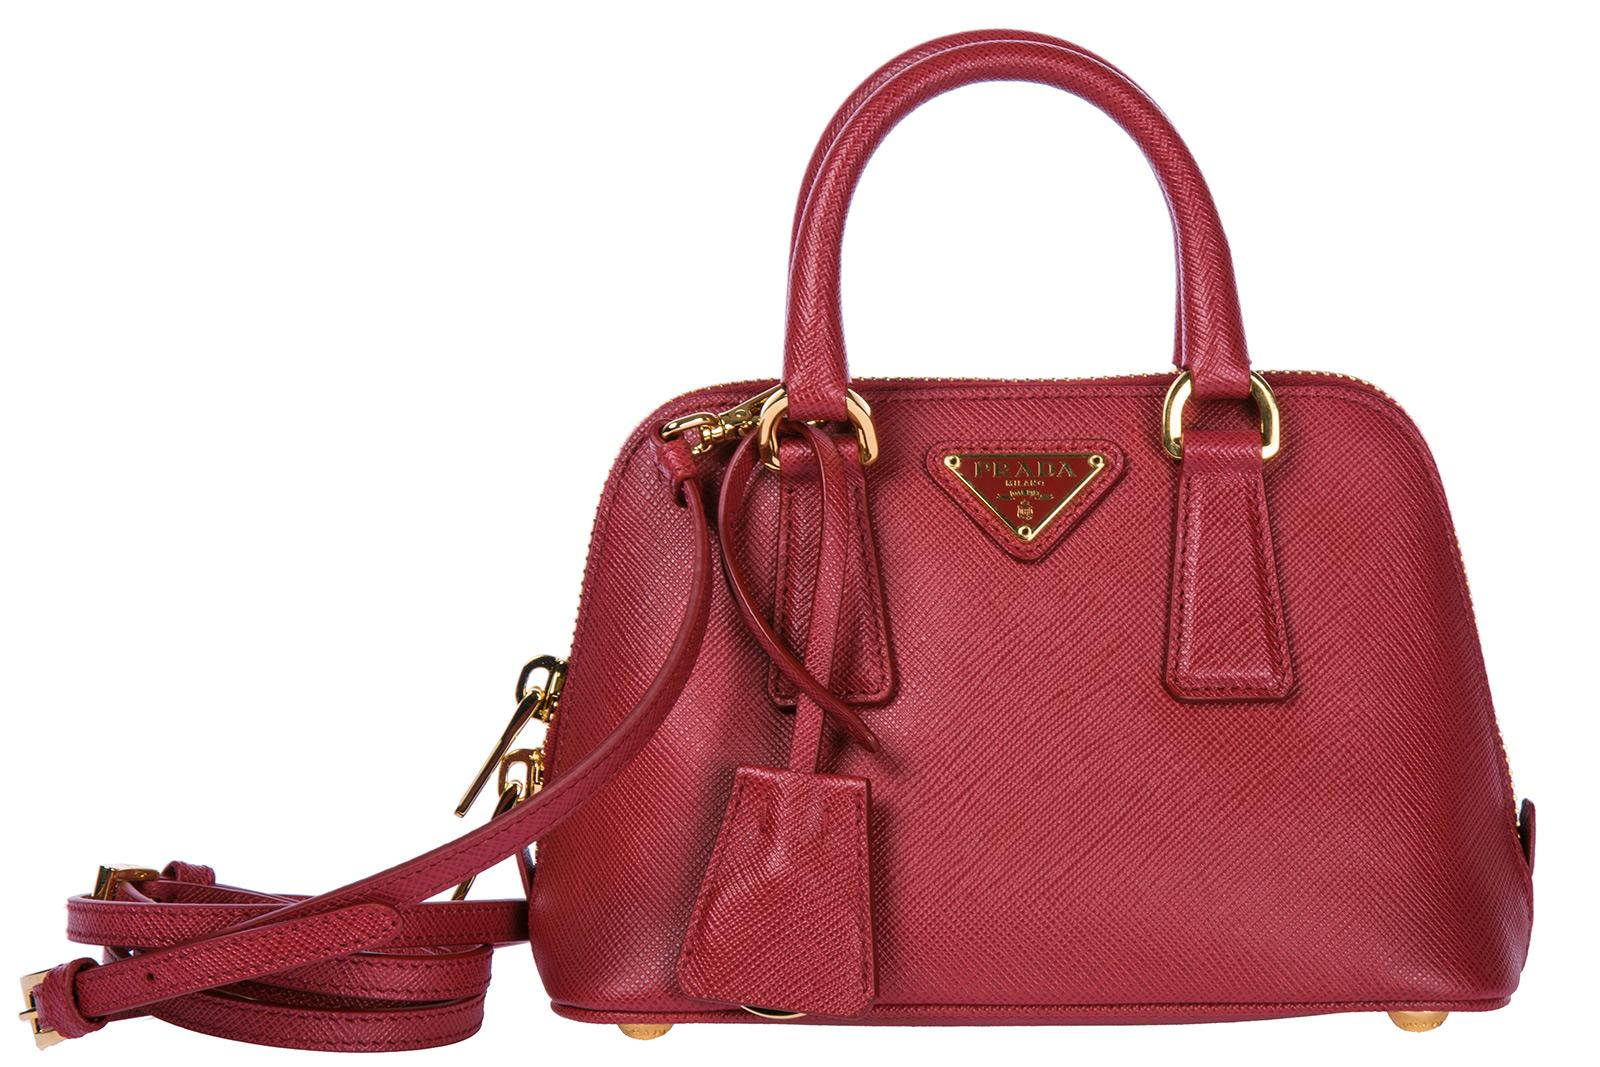 Prada Women's Leather Cross-body Messenger Shoulder Bag In Red